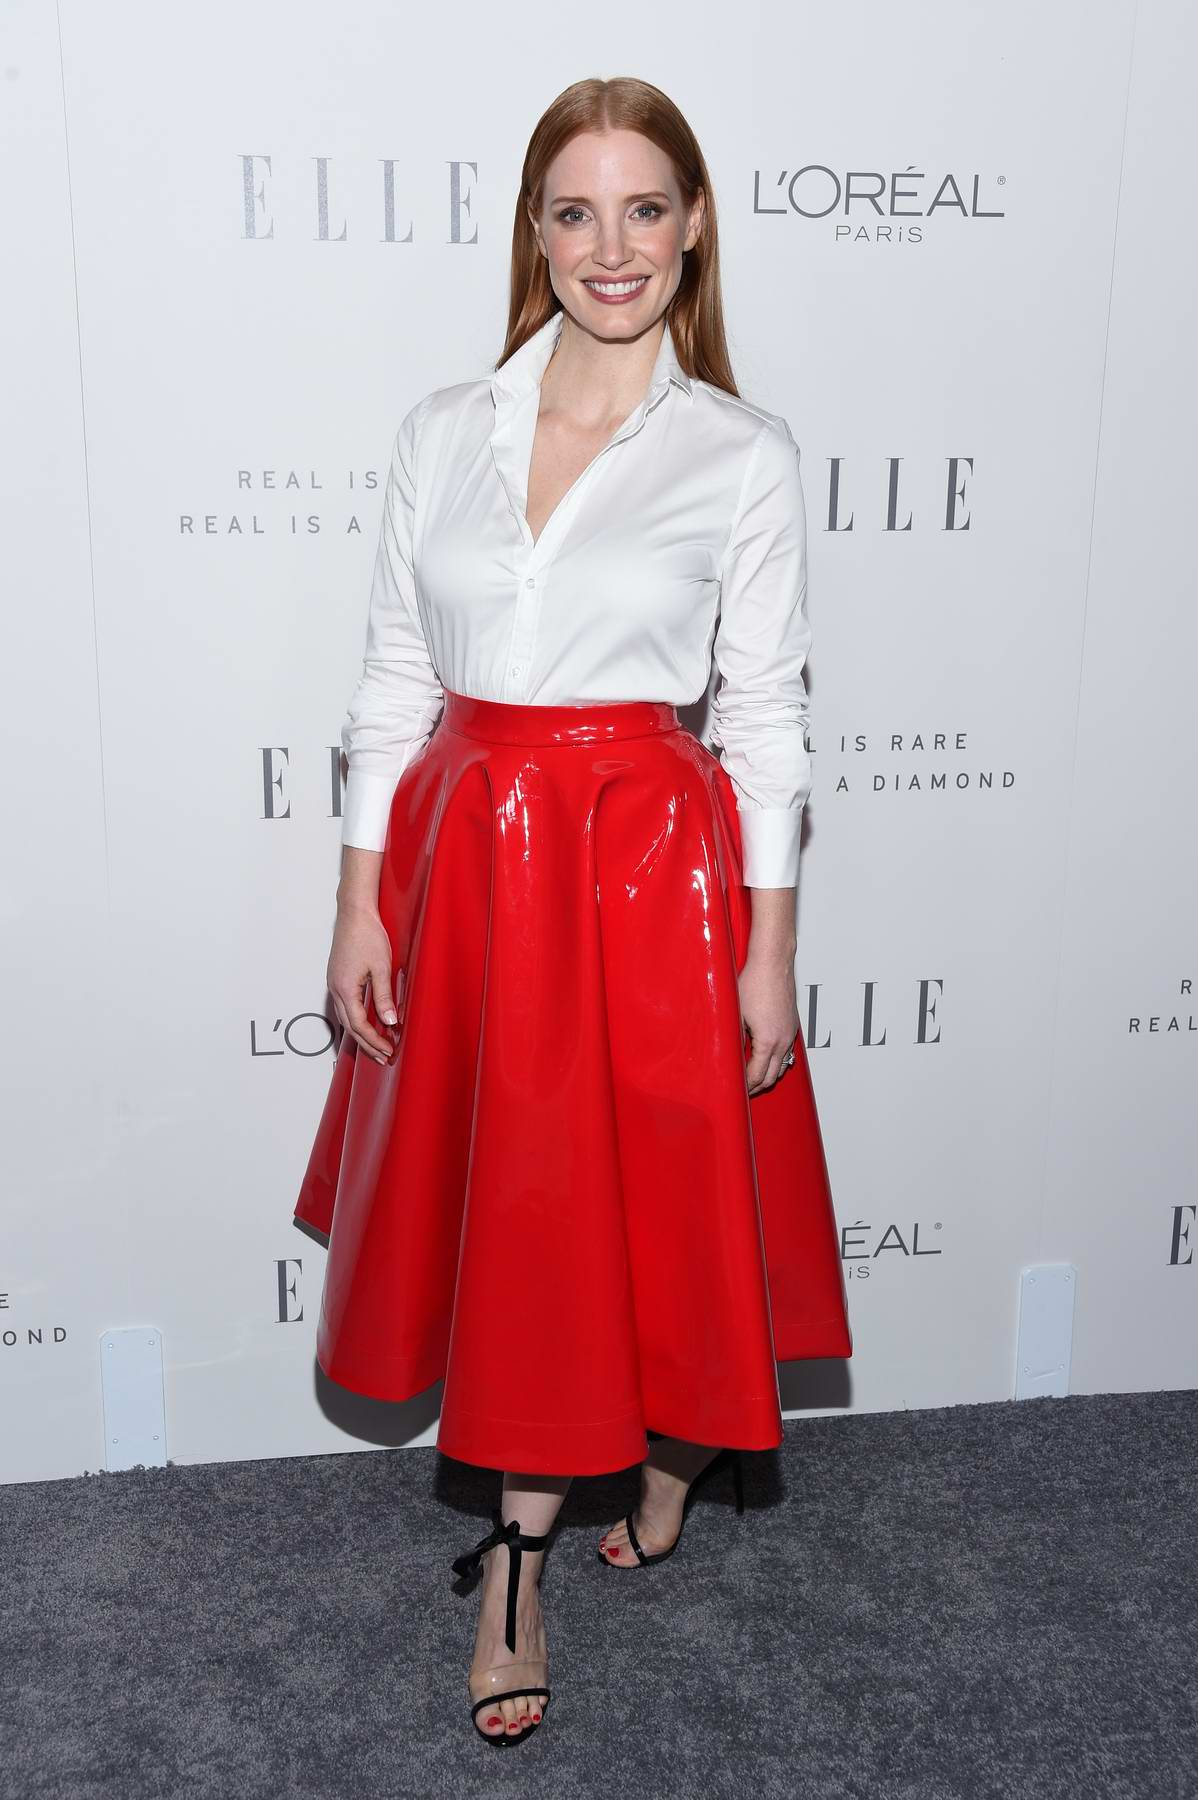 Jessica Chastain at the Elle's 24th Annual Women in Hollywood Celebration in Los Angeles